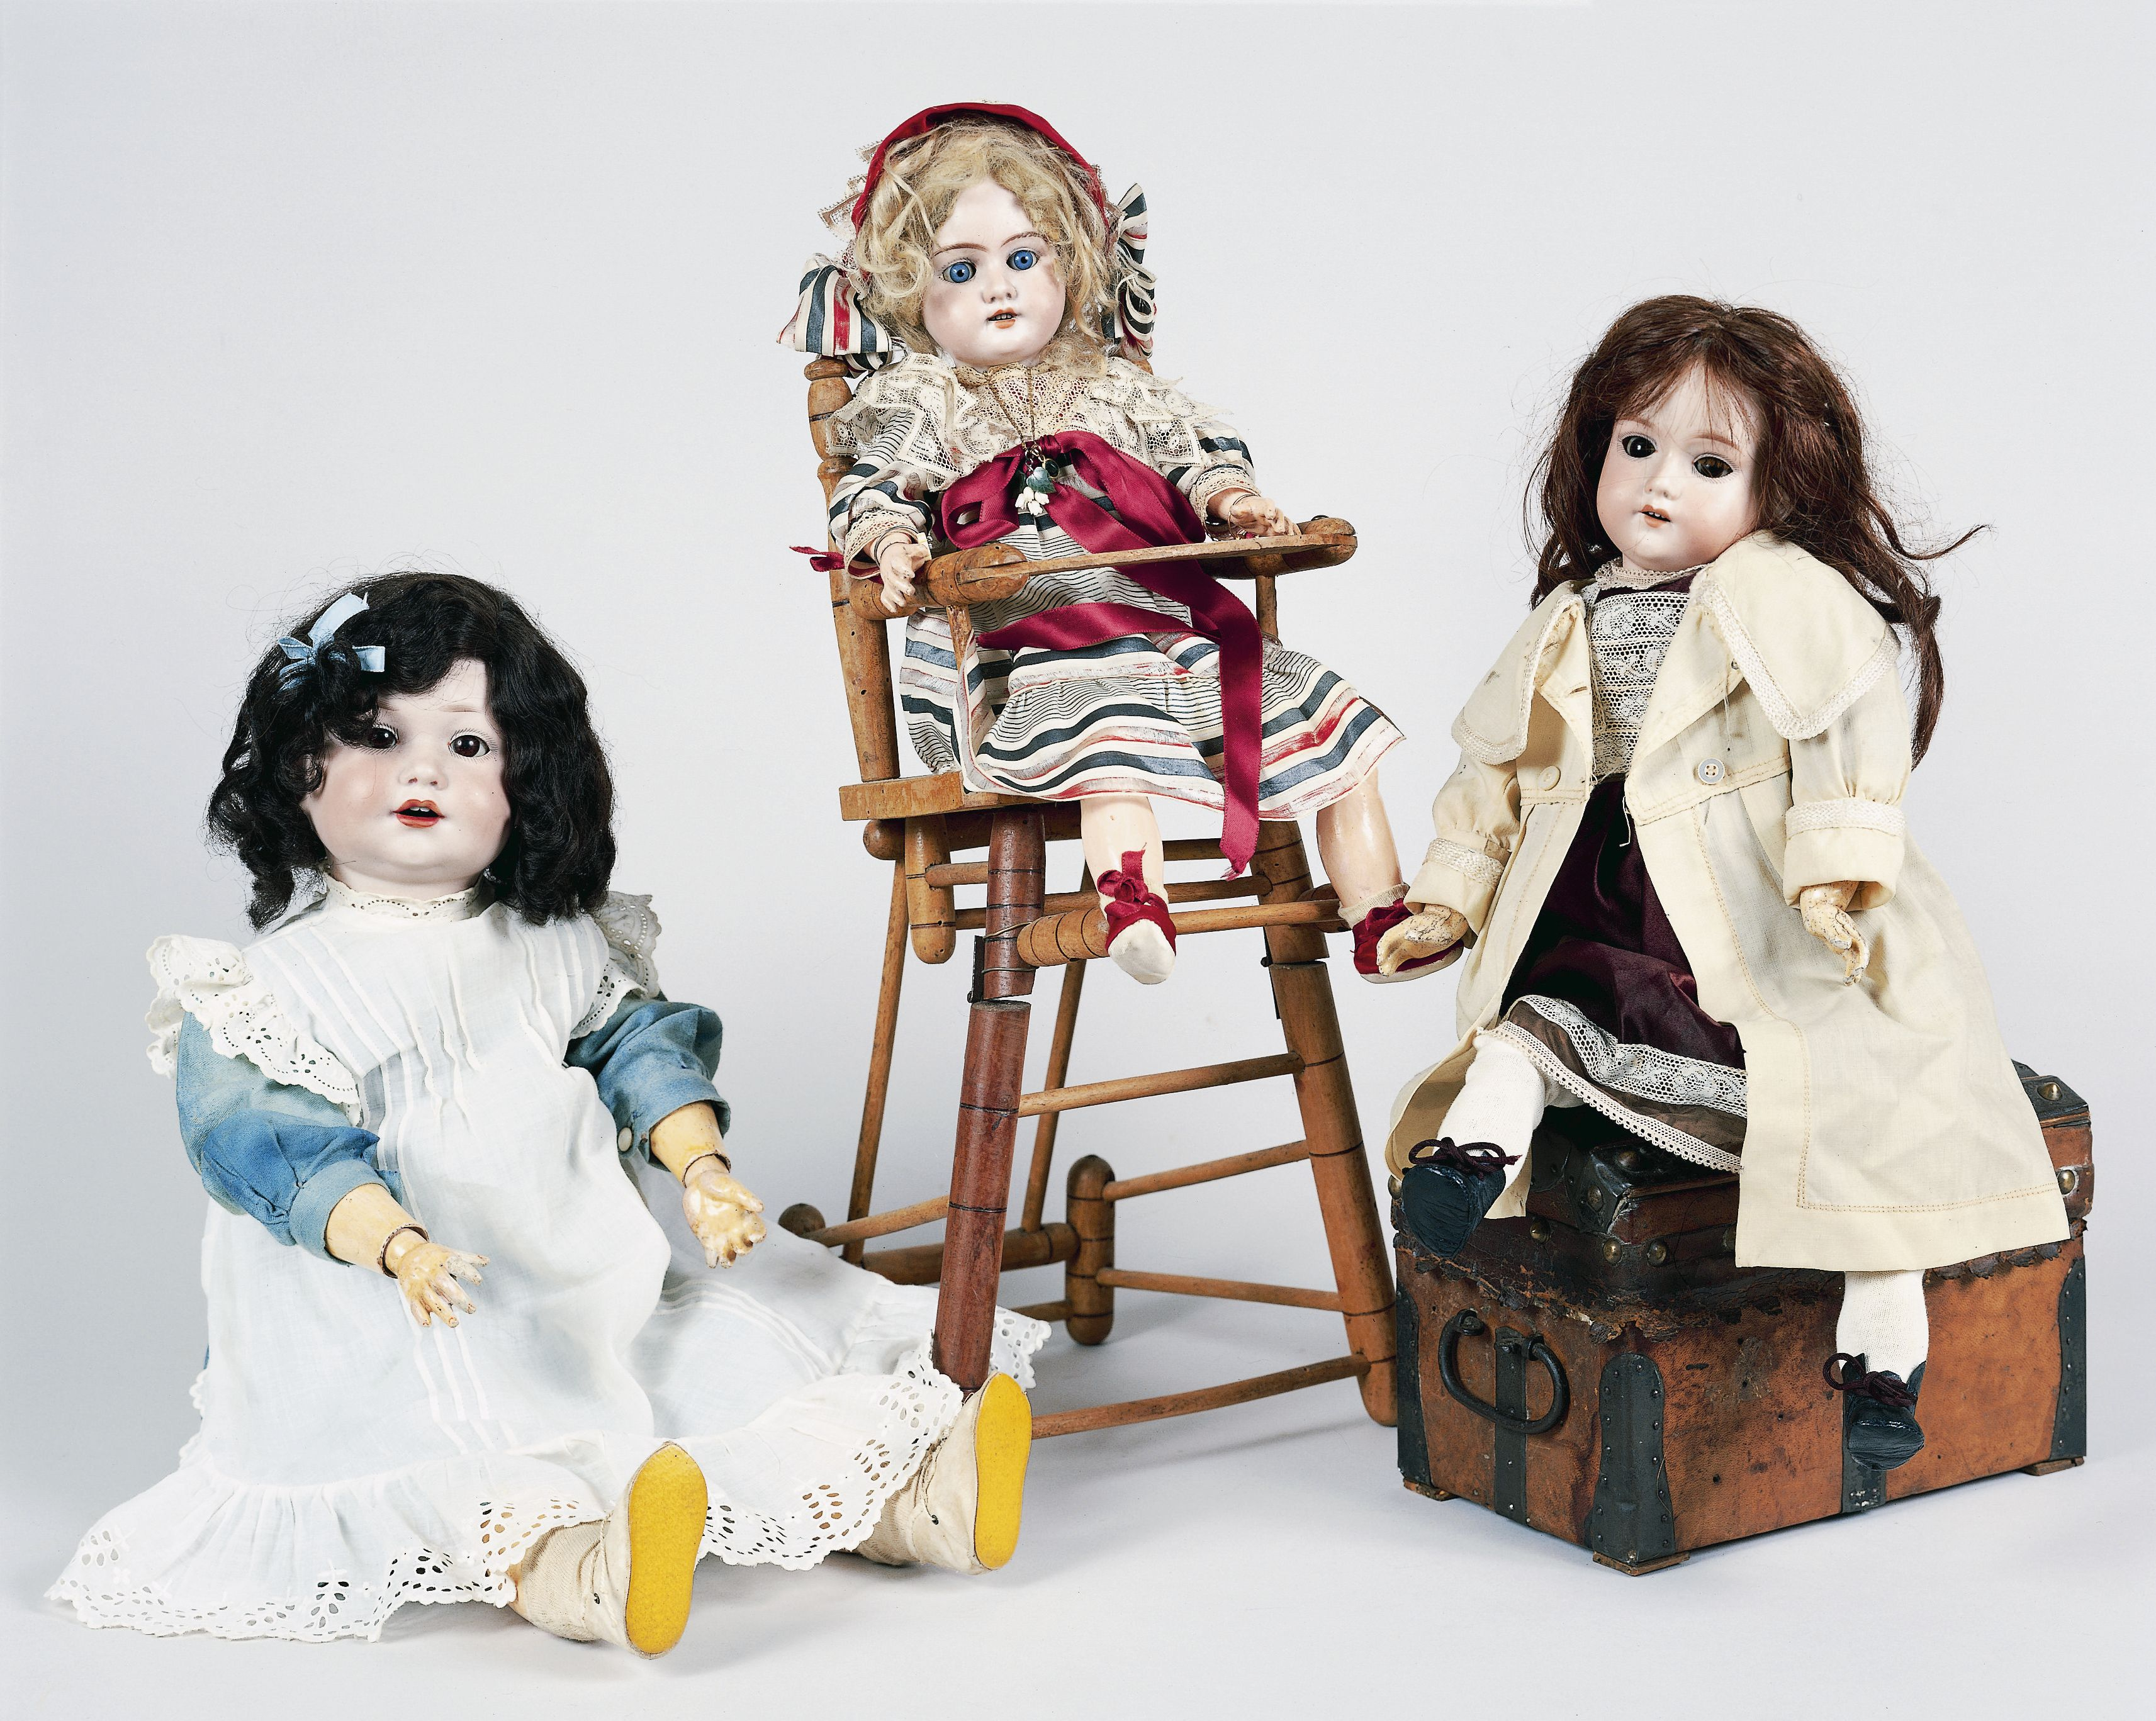 Bisque dolls made by Armand Marseille, ca 1930, Germany, 20th century